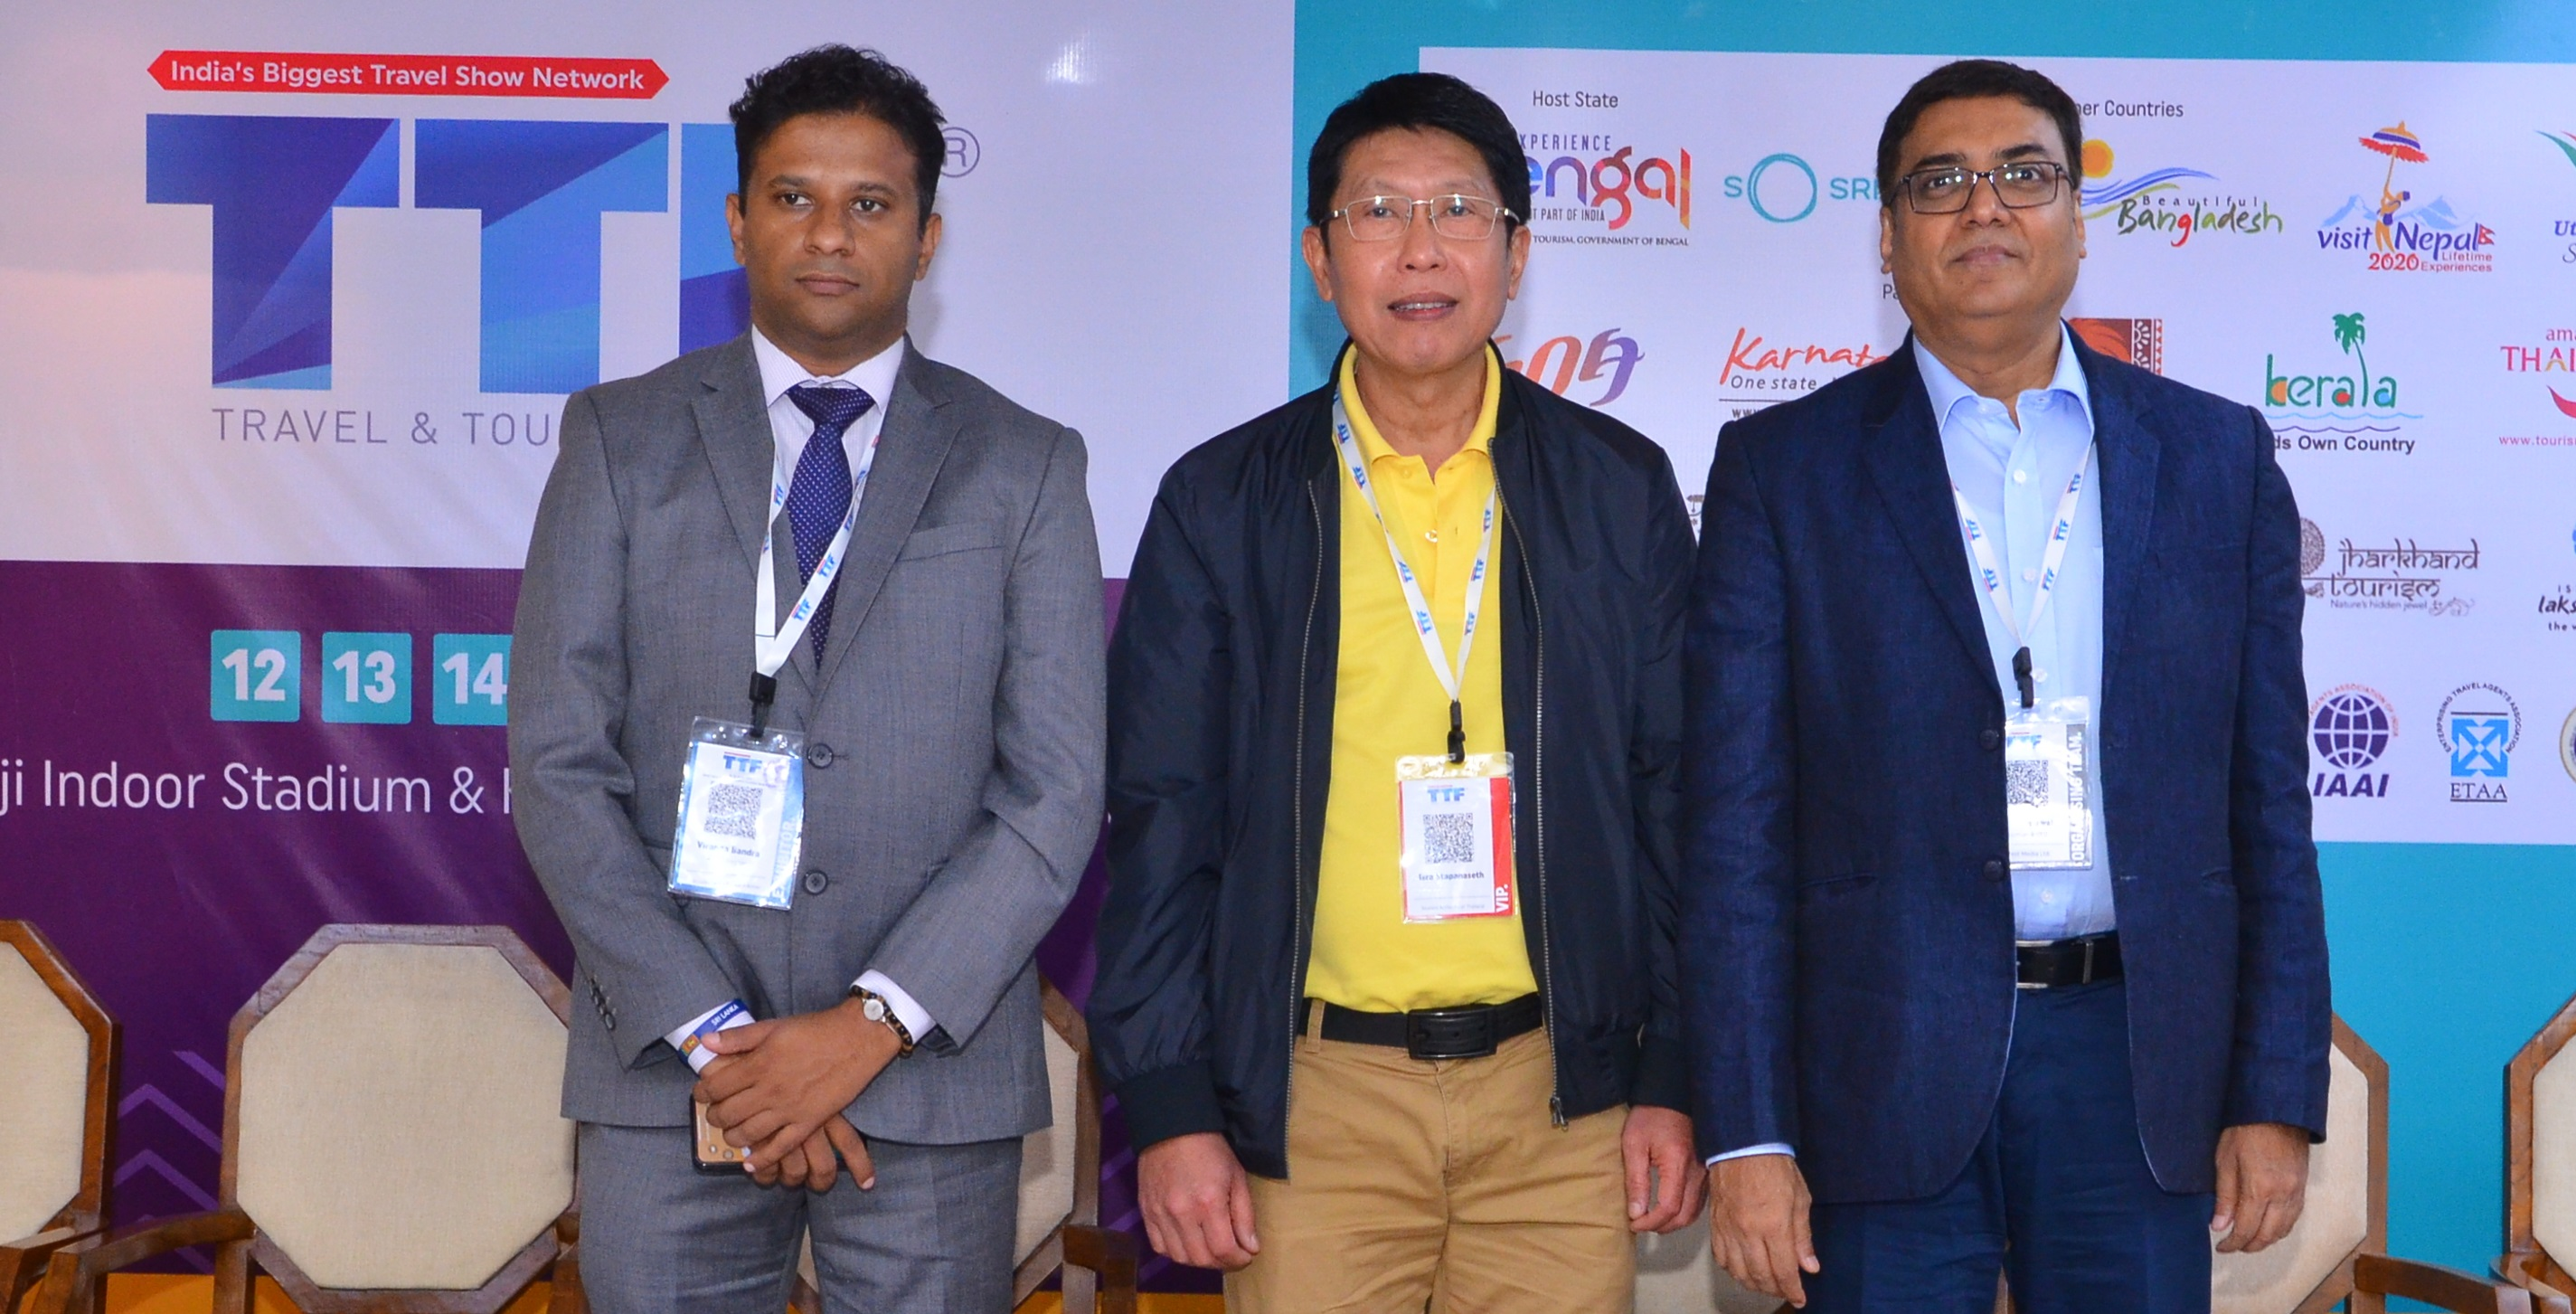 Viranga Bandara, assistant director - marketing, Sri Lanka Tourism Promotion Bureau, Isra Stapanseth, director, tourism authority of Thailand, New Delhi & Sanjiv Agarwal, chairman & CEO, Fairfest Media at the TTF 2019